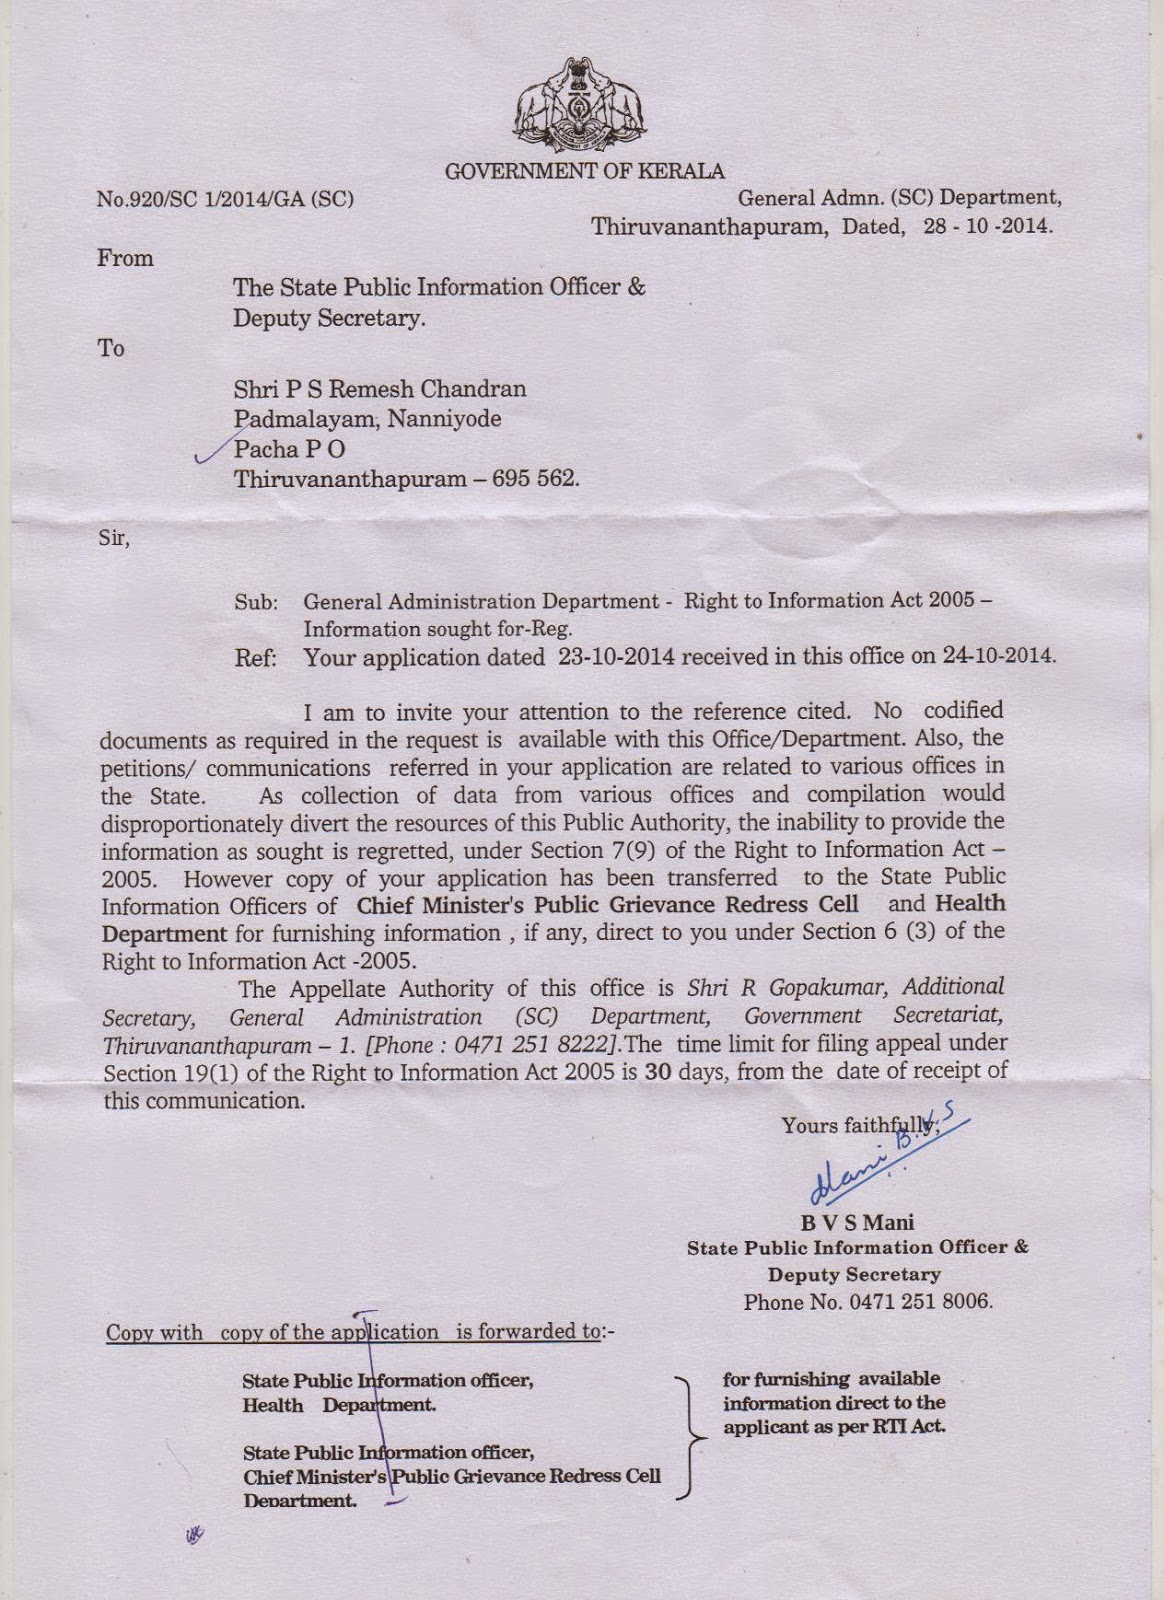 Official Letter Format For Application on formal job, for writing siwes, for tu nepal, sample job, for lecture, for business visa, for writing it, for personal loan,